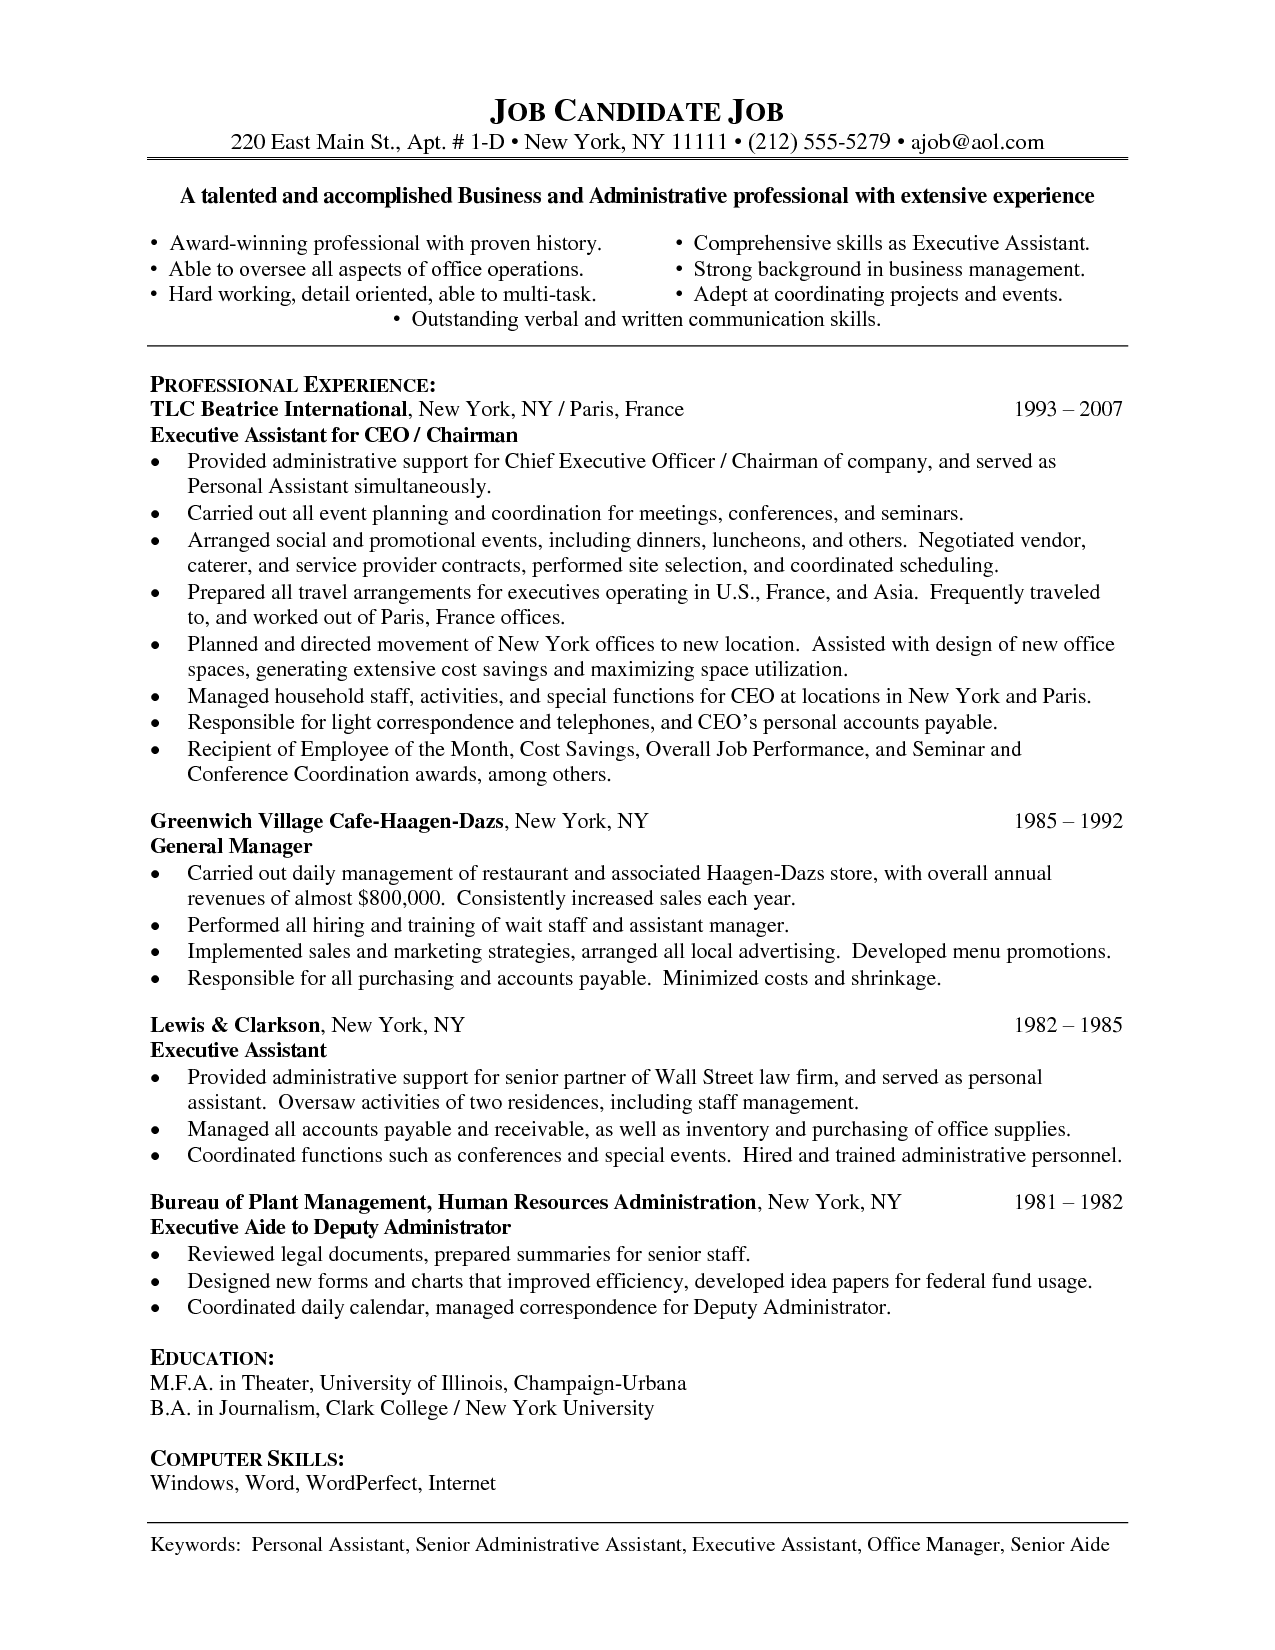 Functional Resume For Administrative Assistant Adorable Administrative Functional Resume  Google Search  Administrative .